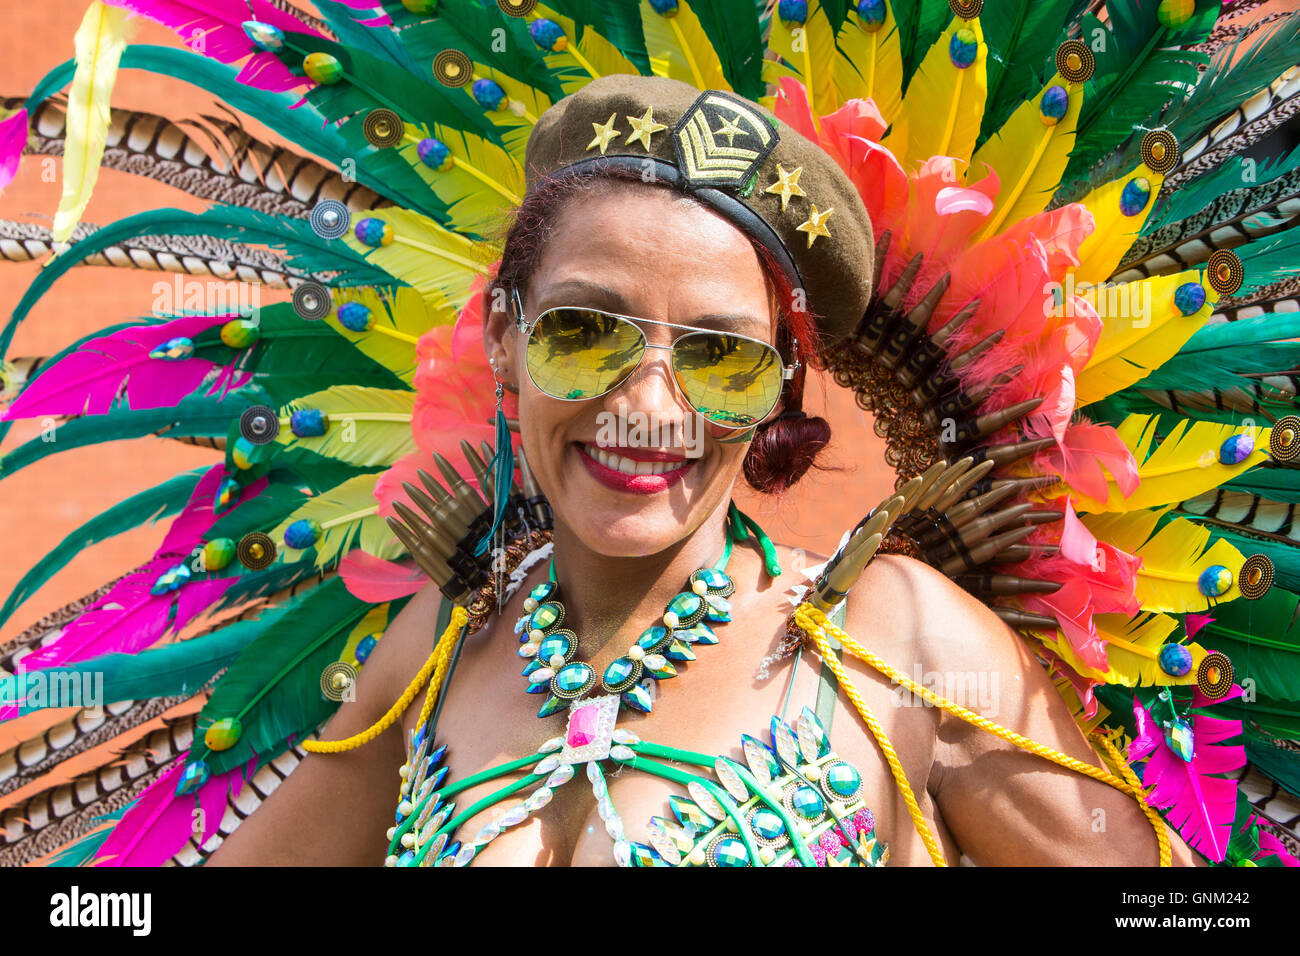 A festival performer in traditional costume parading at the Notting Hill carnival in West London - Stock Image